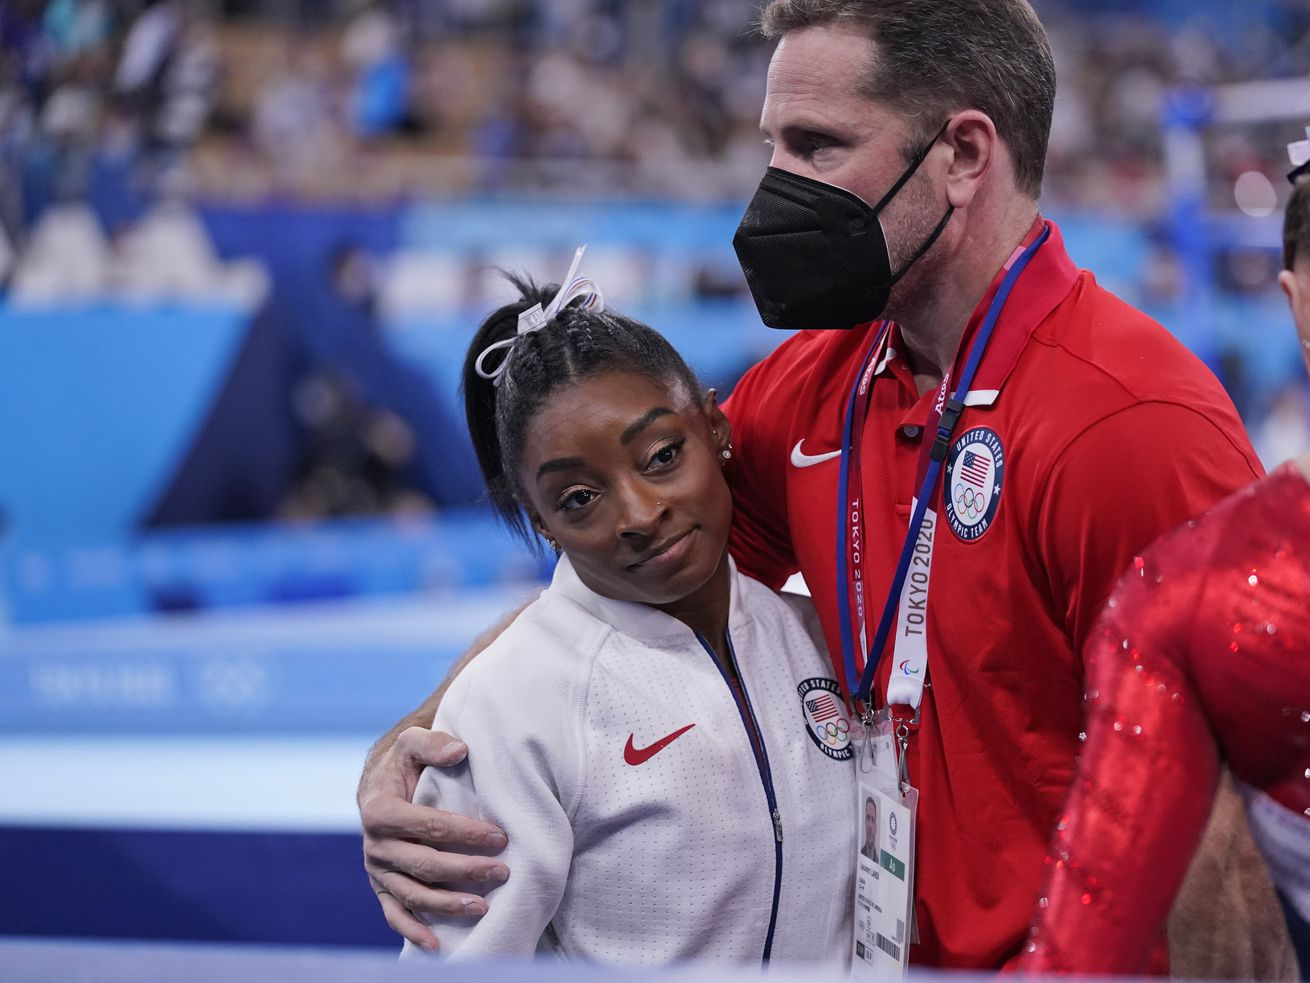 Coach Laurent Landi embraces Simone Biles after she exited the team final at the 2020 Summer Olympics on Tuesday, July 27, 2021, in Tokyo.